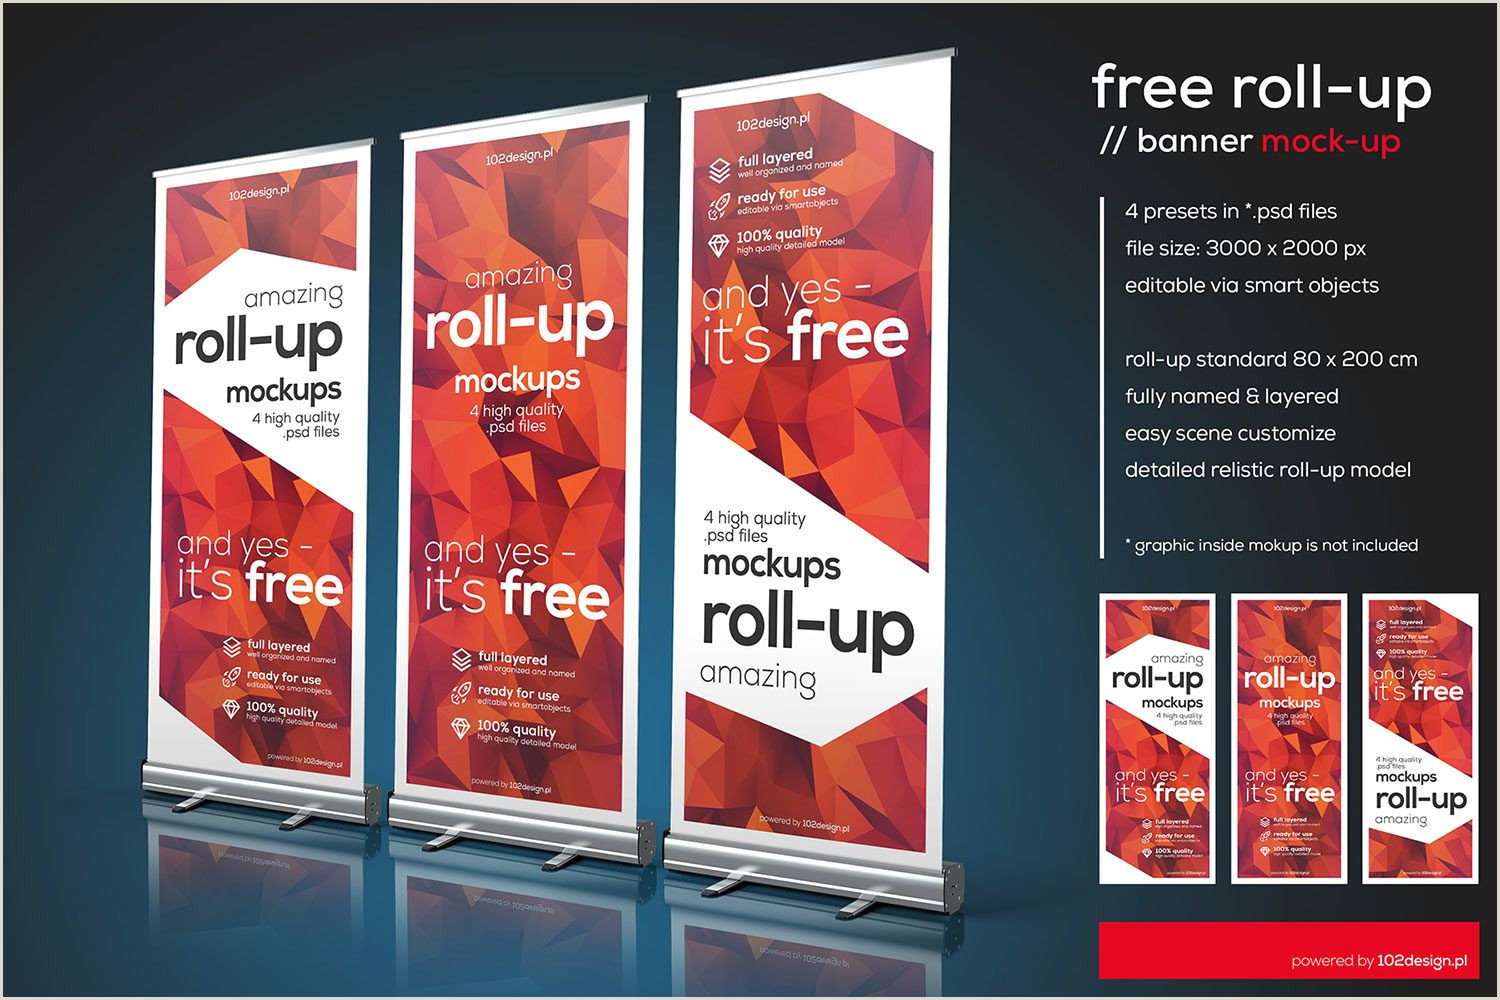 Banner Stand Dimensions Free Psd Roll Up Mockup Free Mockup